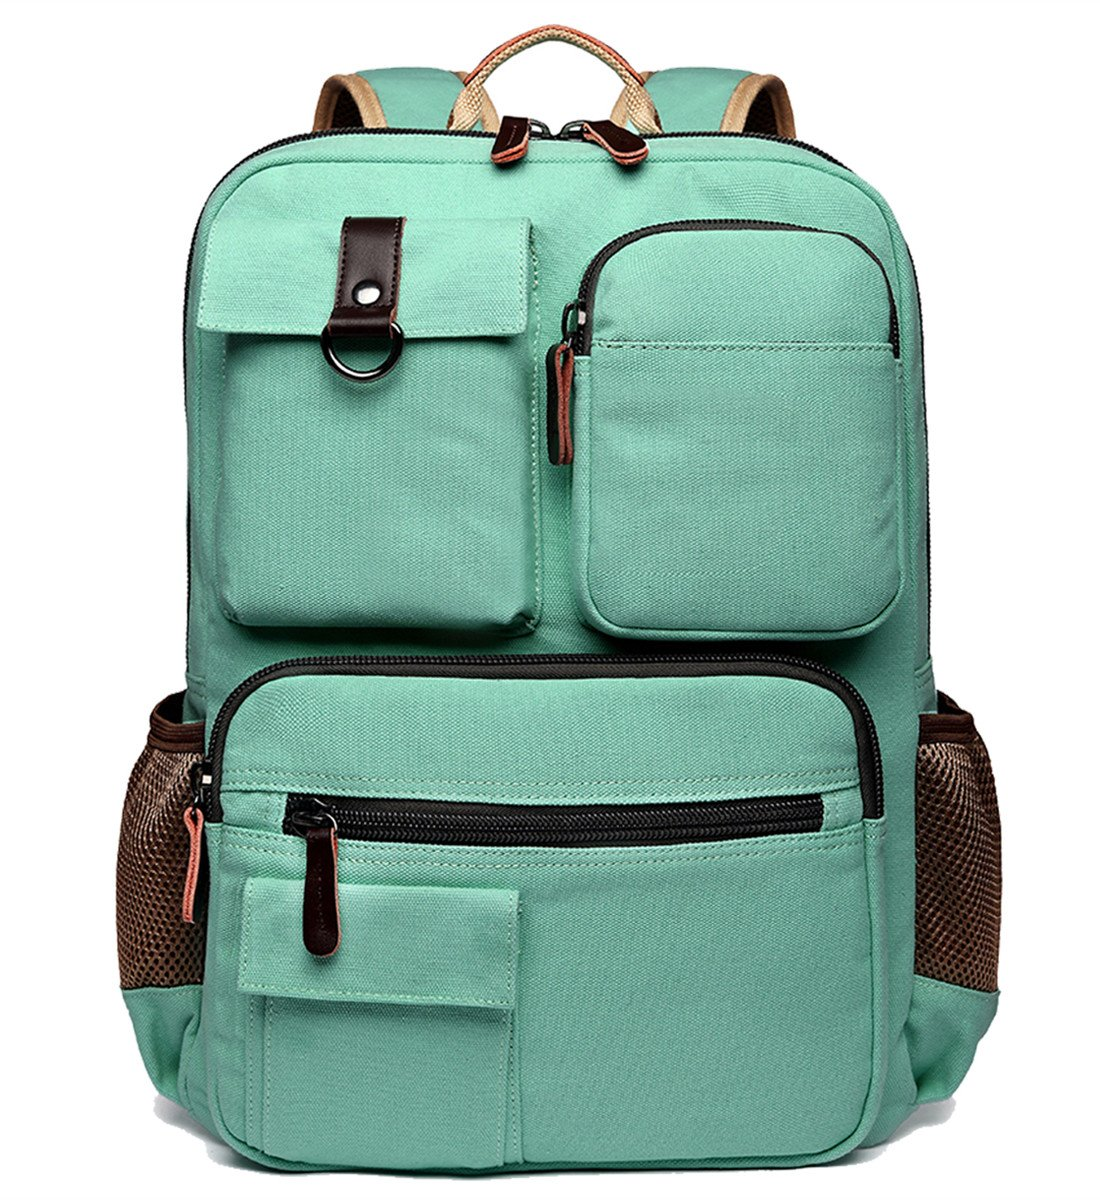 School Backpack Vintage Canvas Laptop Backpacks Men Women Rucksack Bookbags, Mint Green by CAMTOP